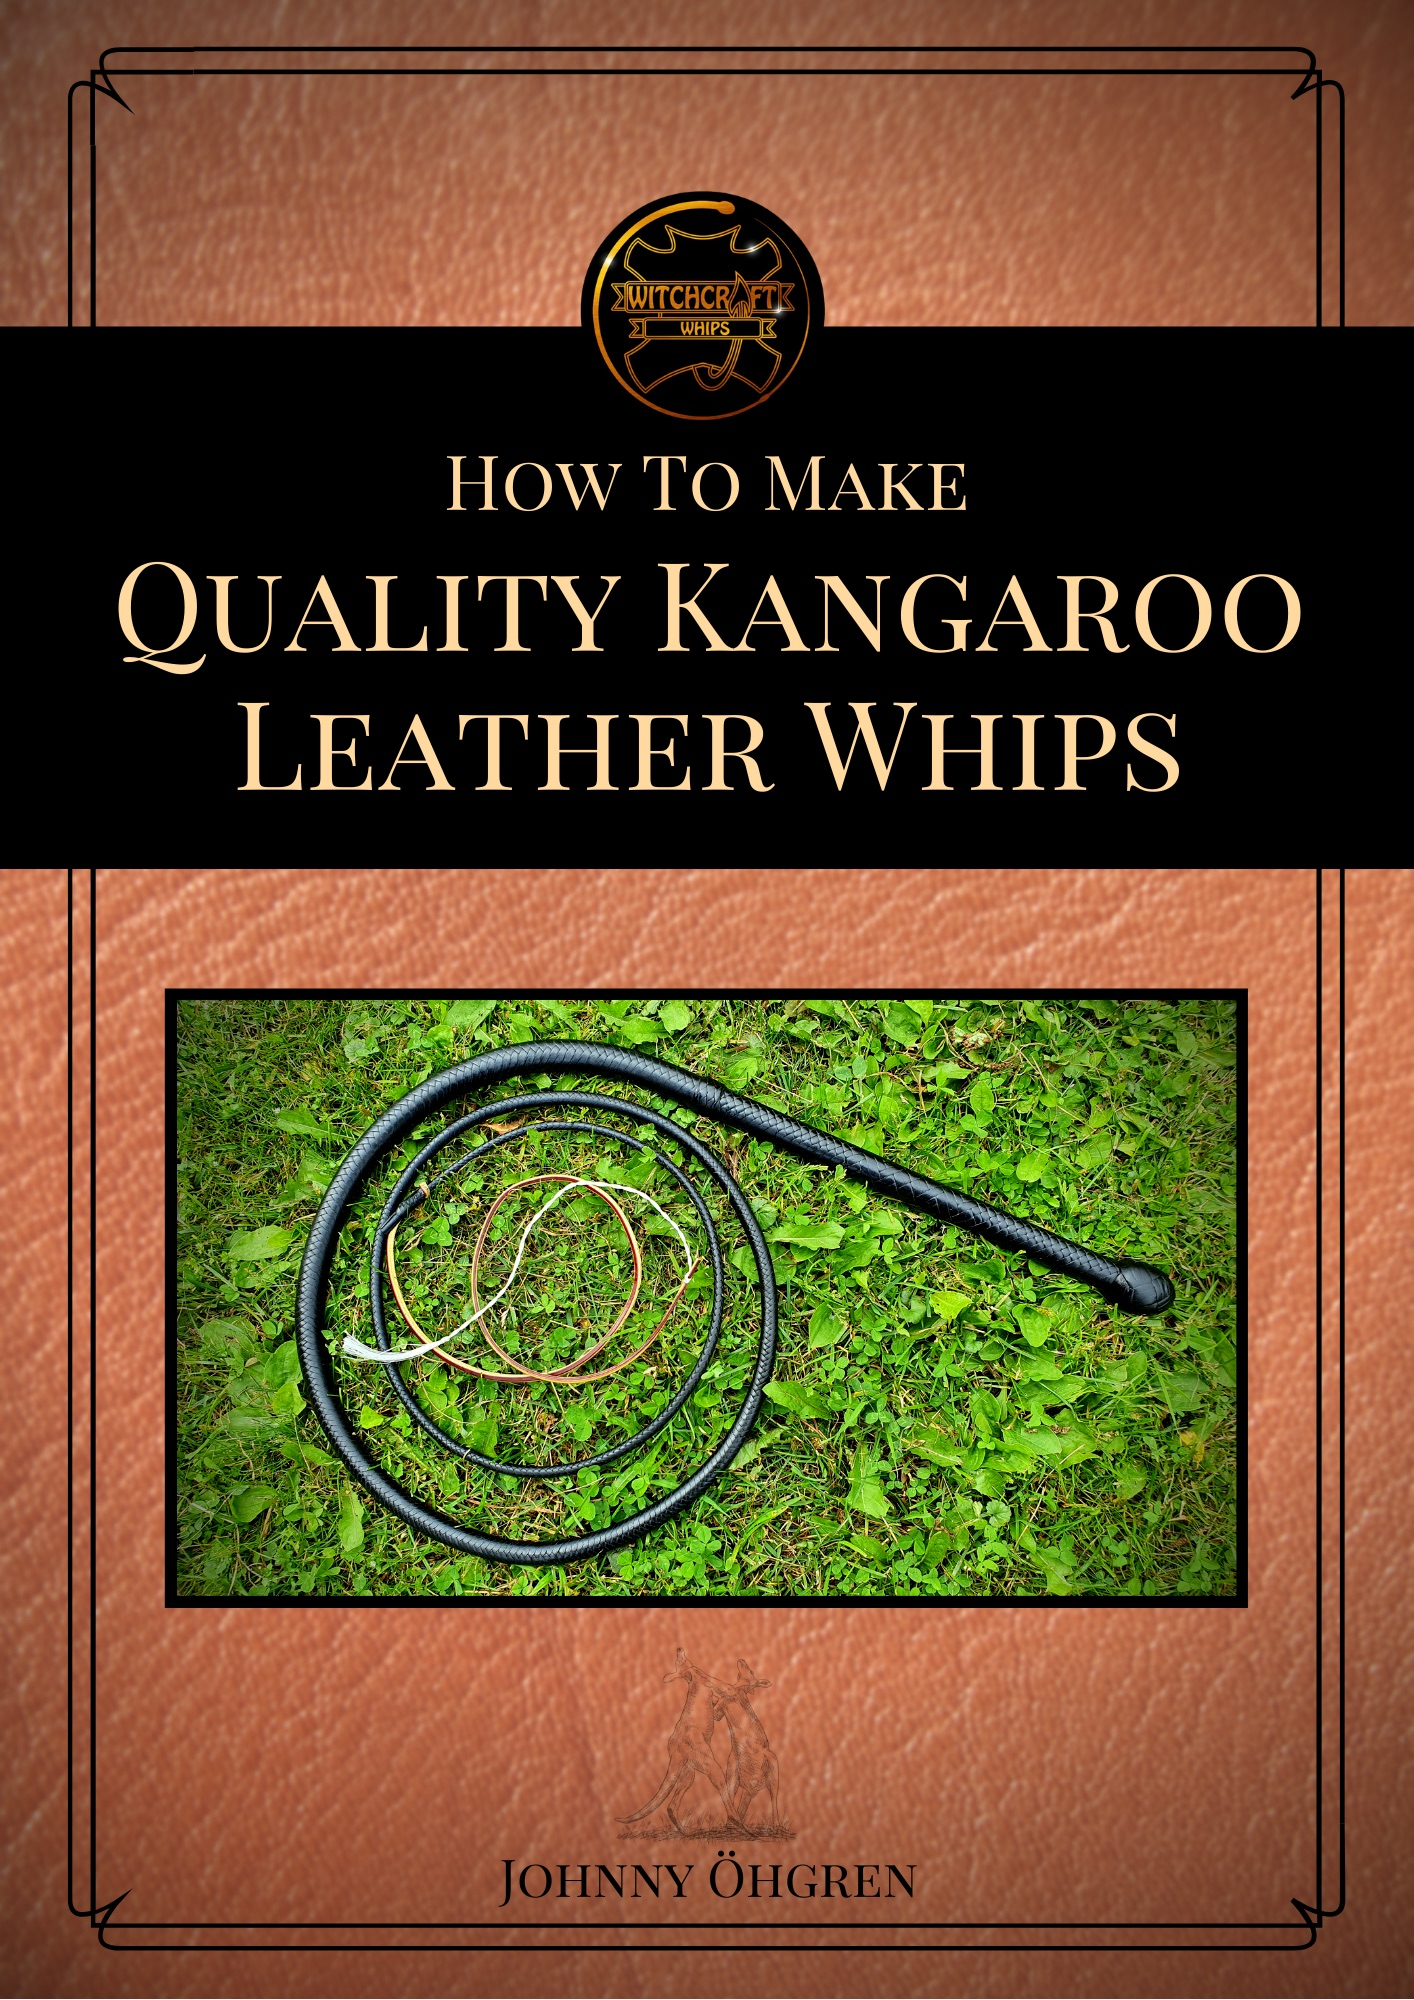 How to make quality kangaroo leather whips